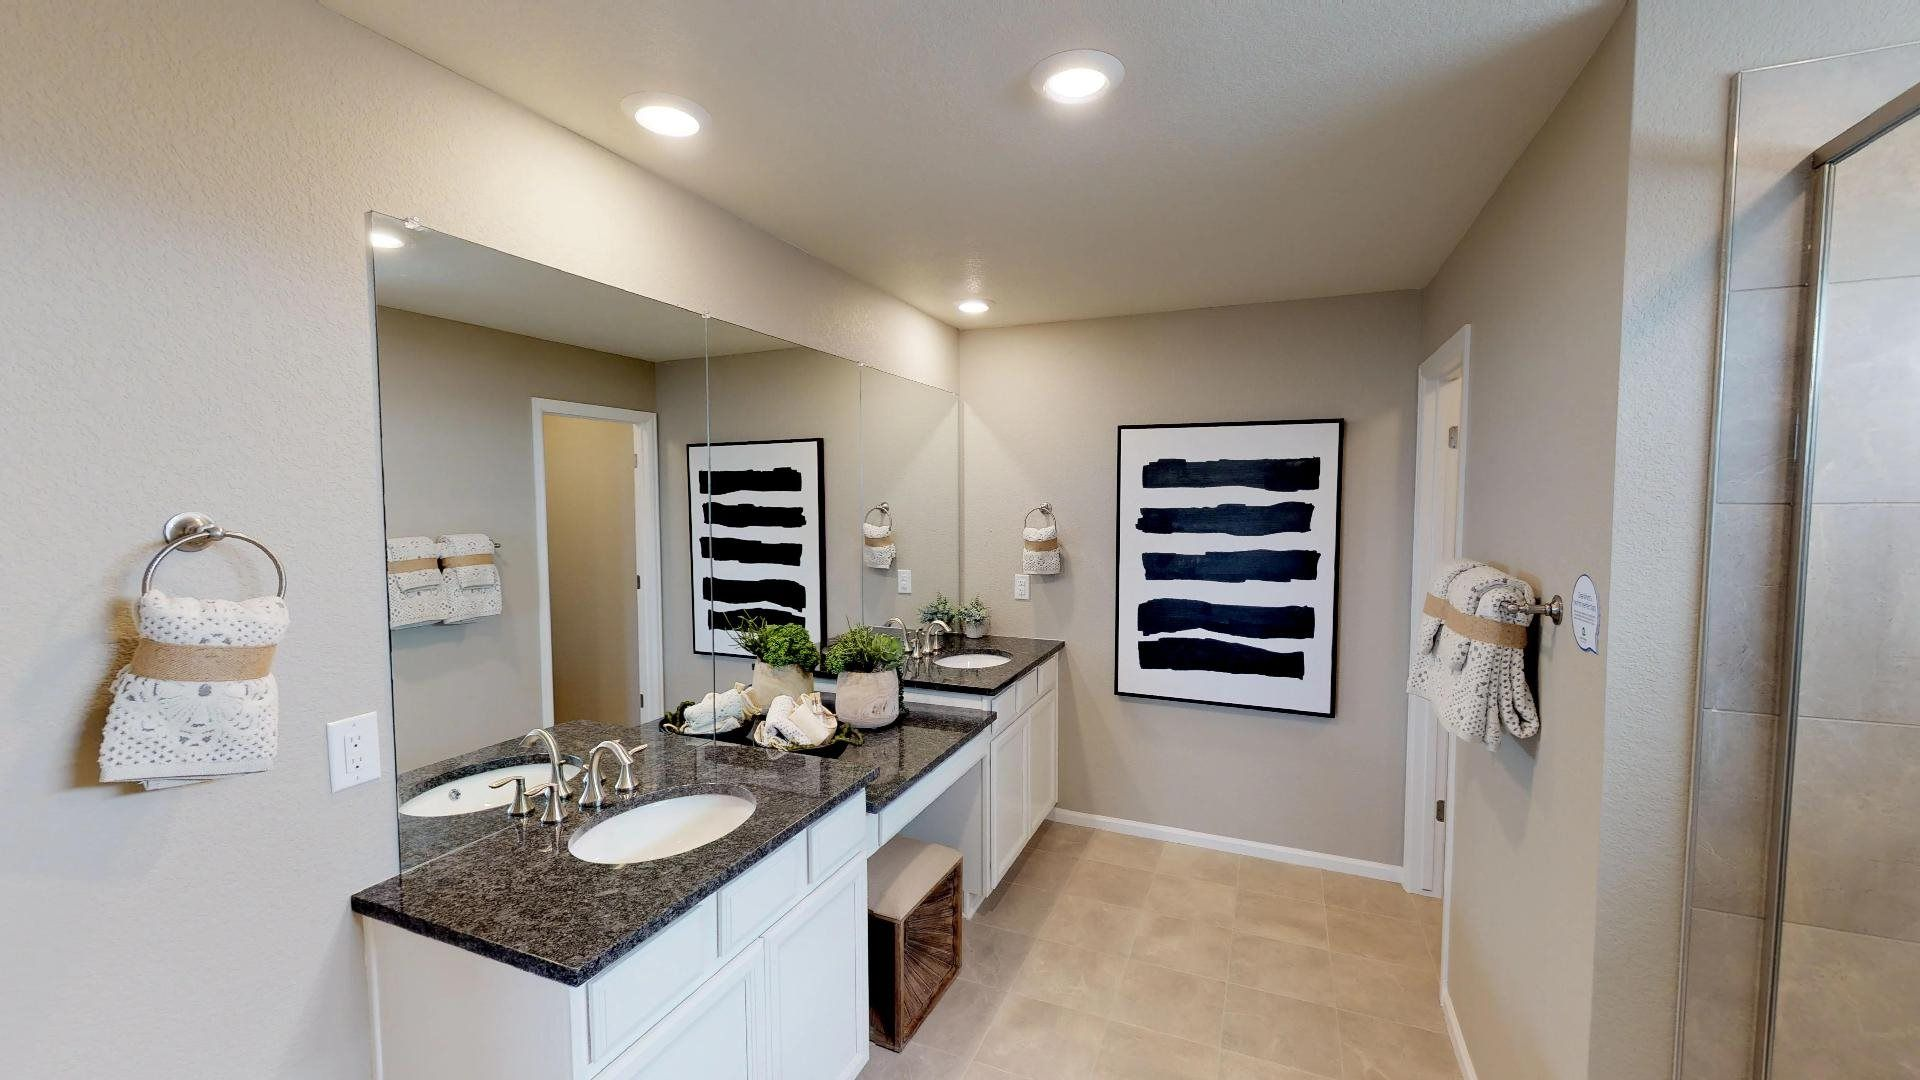 Bathroom featured in the Chelton By Lennar in Fort Collins-Loveland, CO